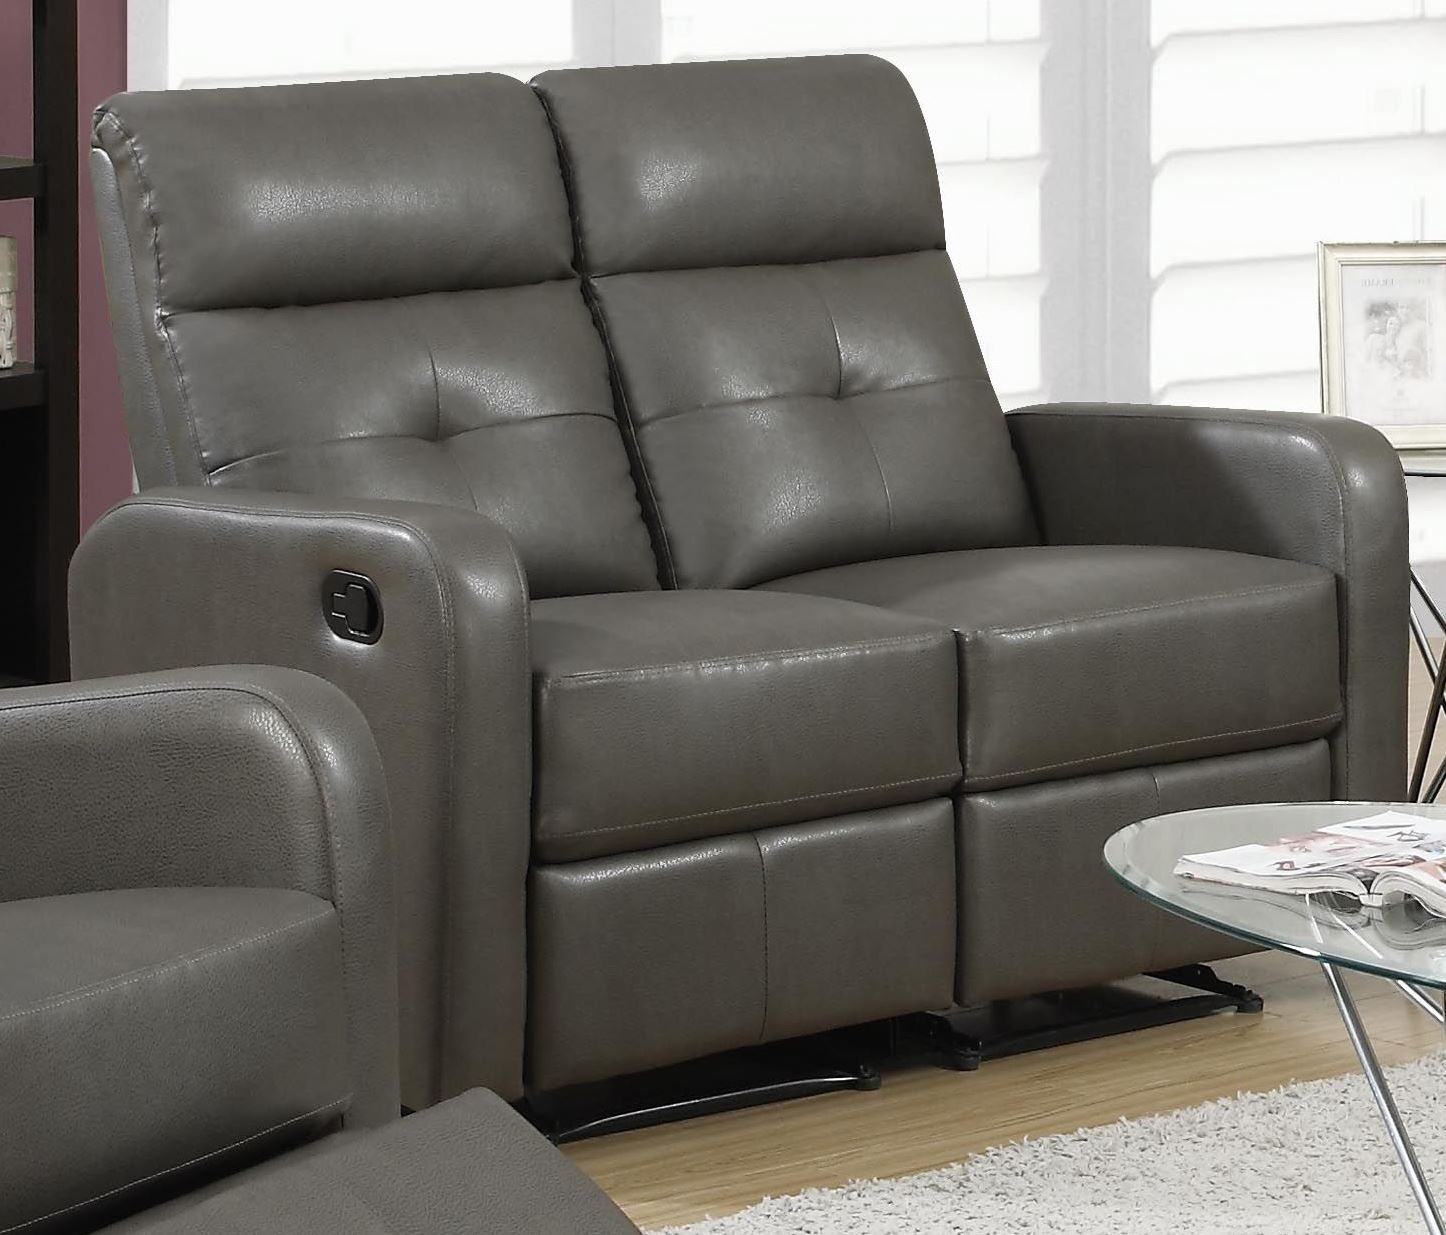 recliner sofa set 3 2 1 deep comfy sectional sofas 85gy charcoal gray bonded leather reclining living room